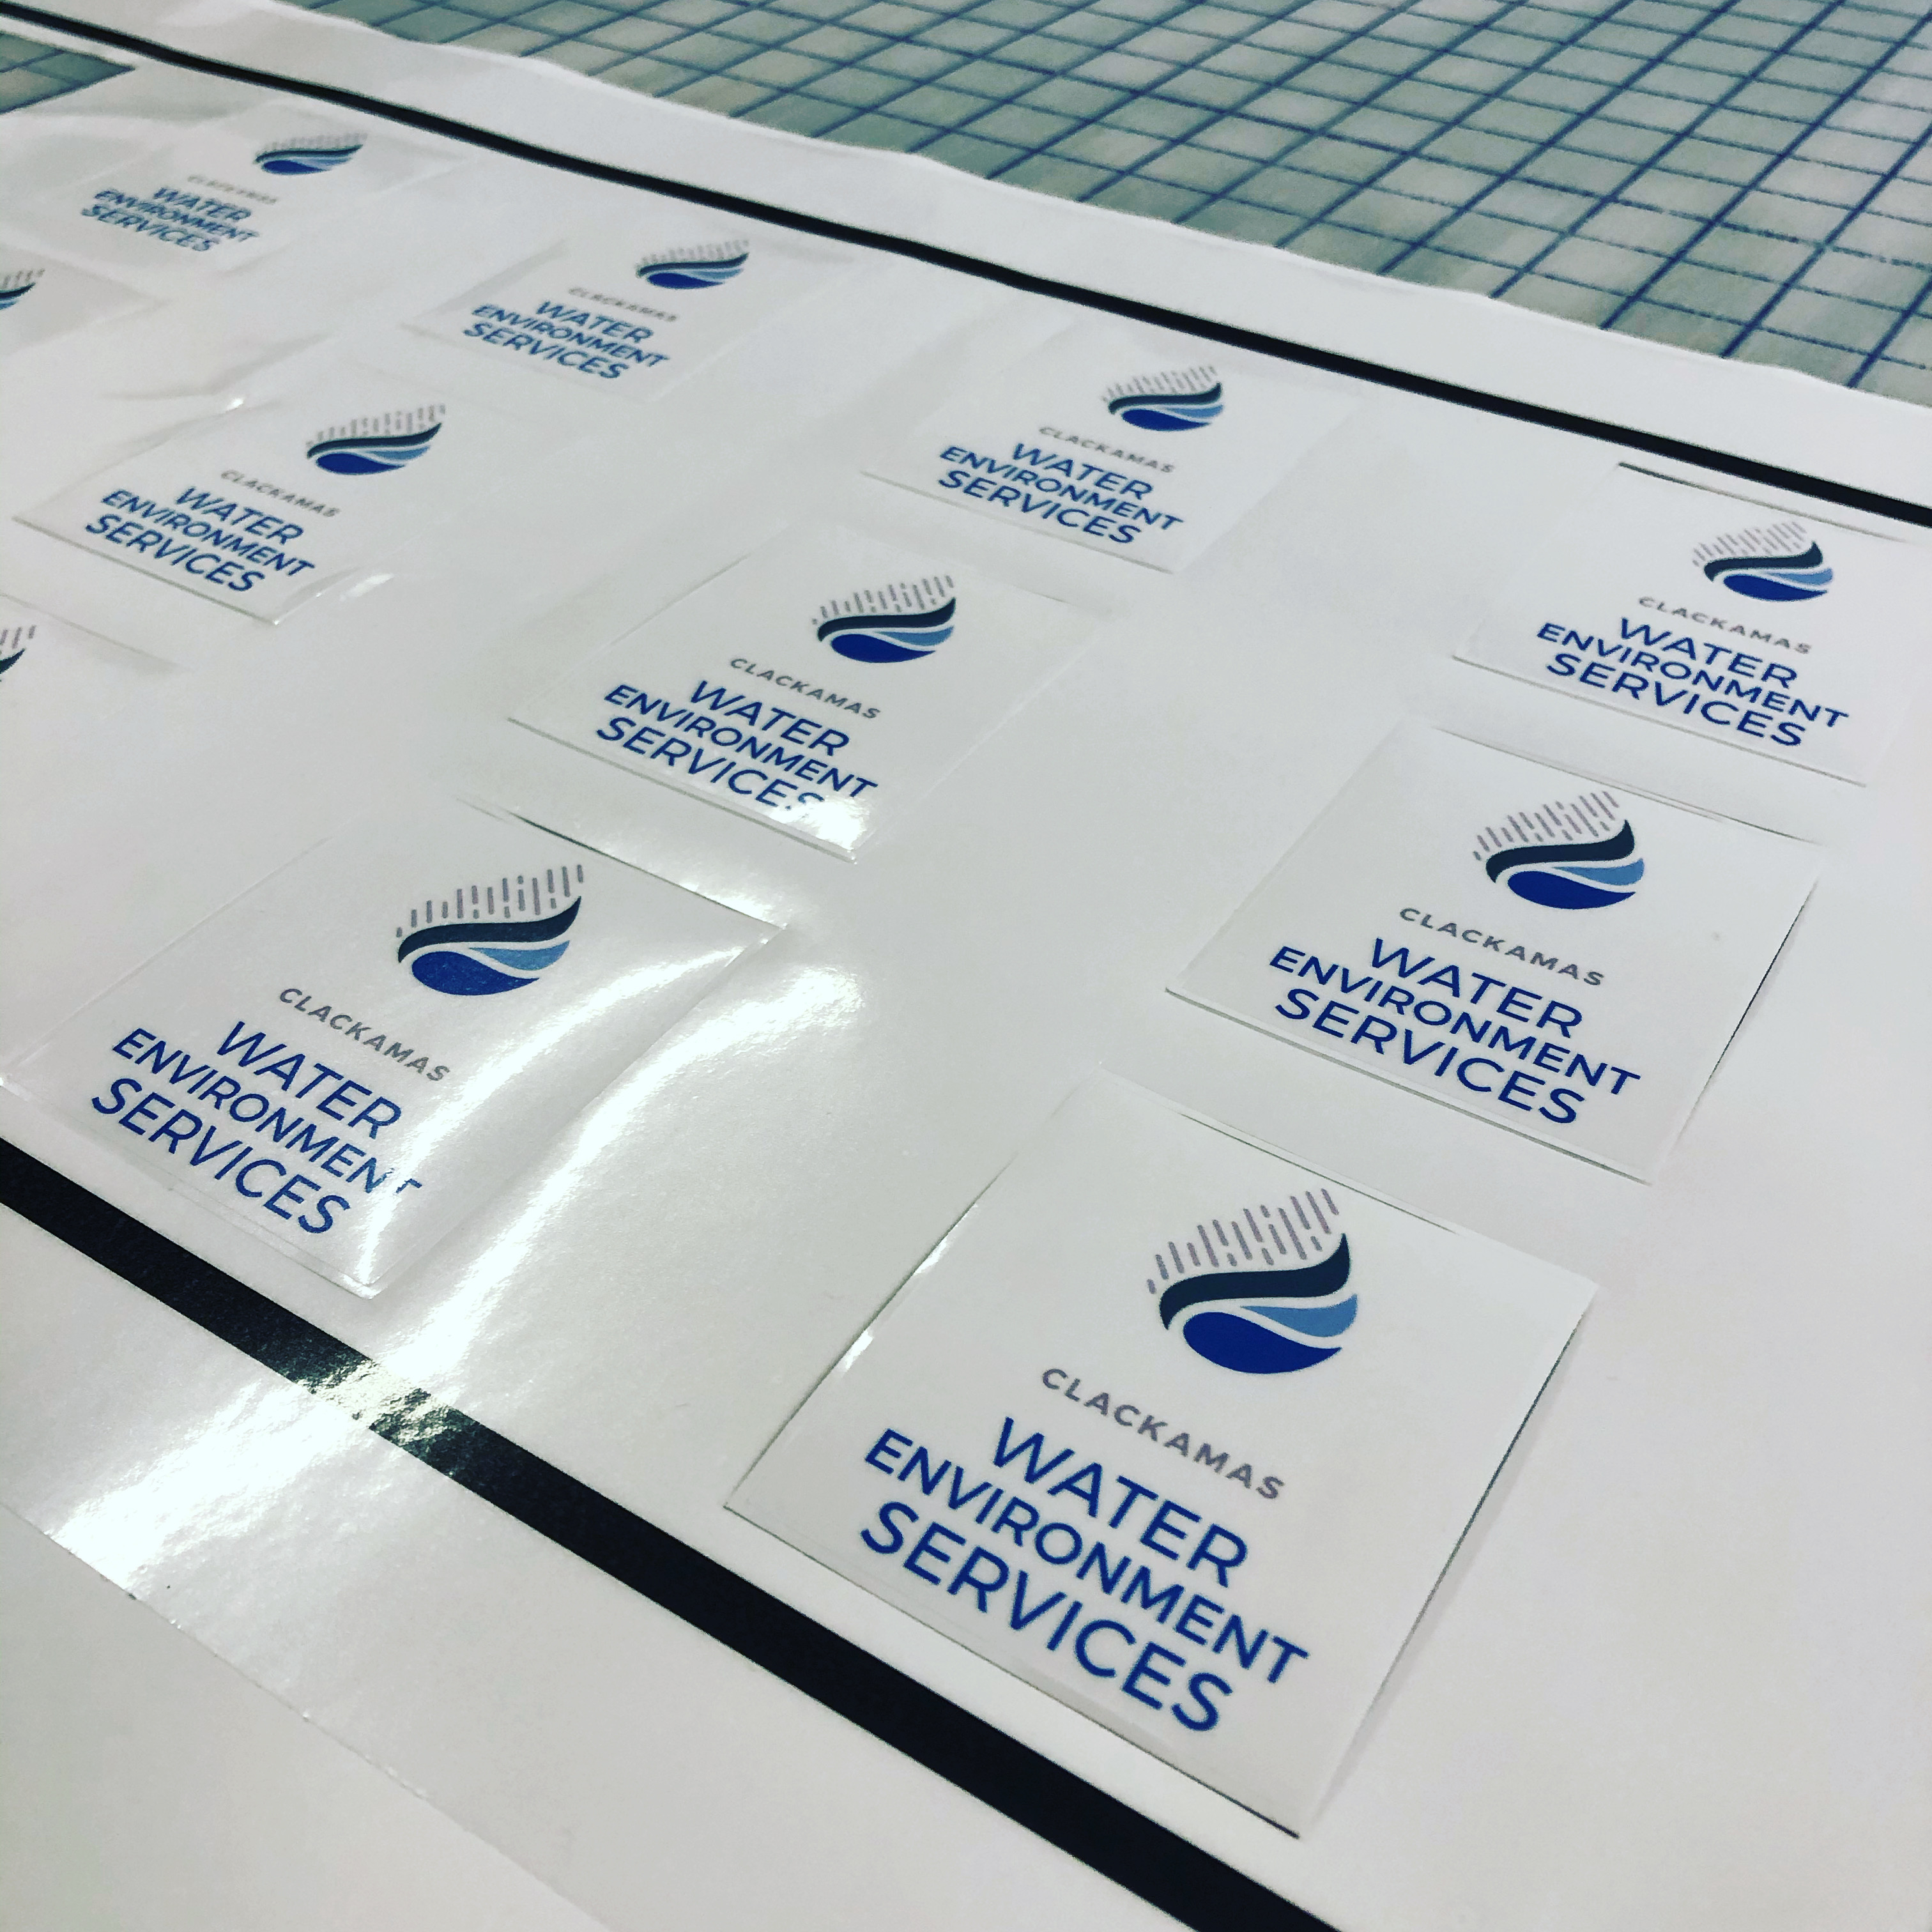 Water Services Sticker